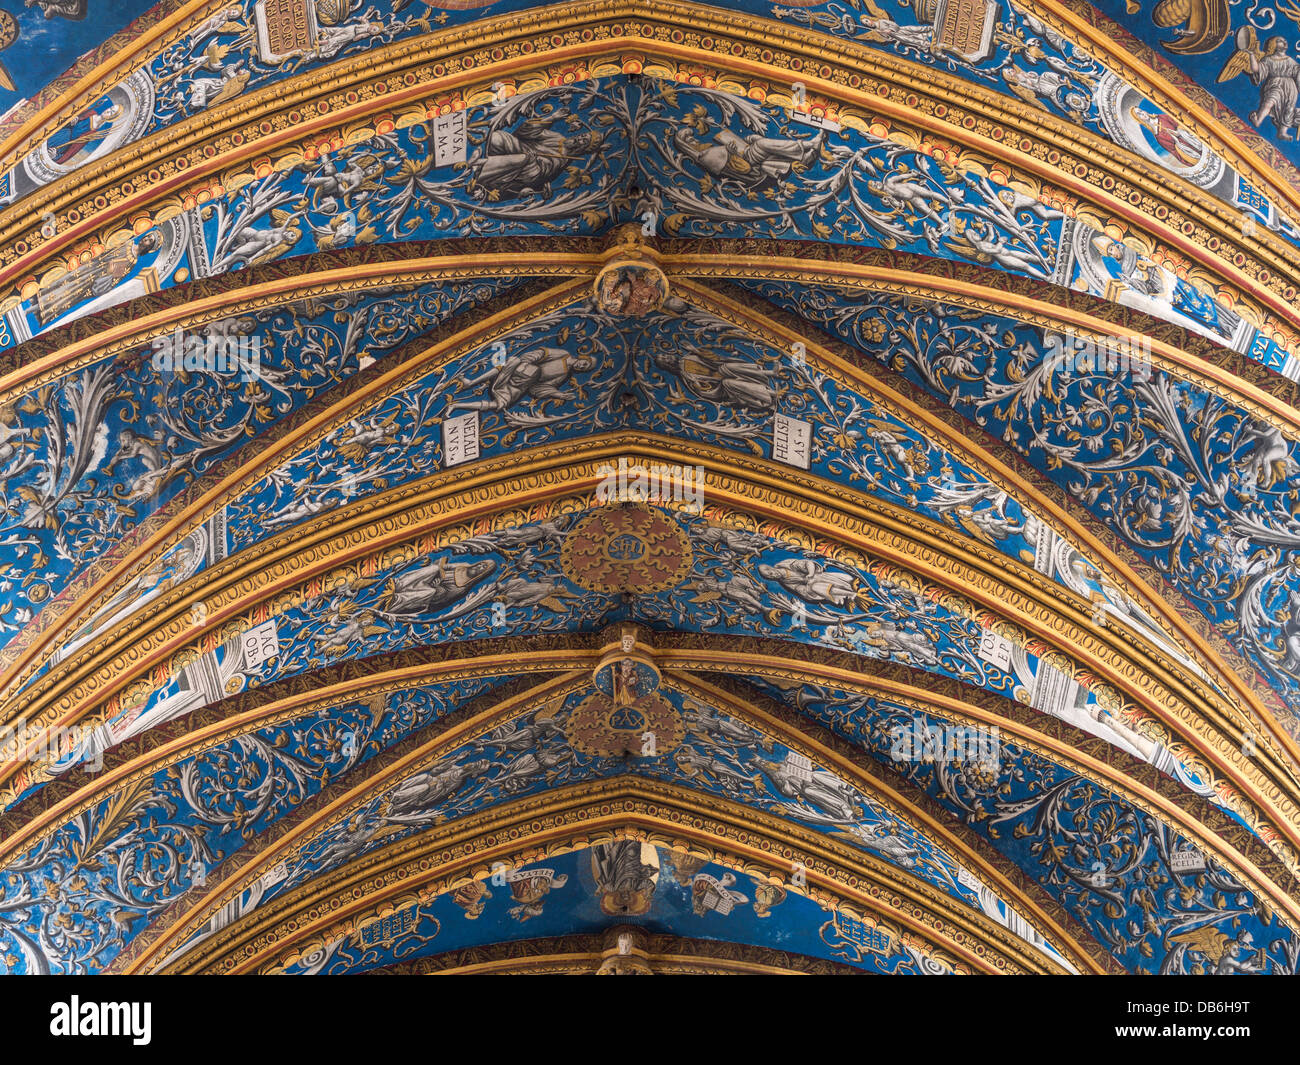 detail of st cecil cathedral ceiling the ornate decorations in blue stock photo royalty free. Black Bedroom Furniture Sets. Home Design Ideas